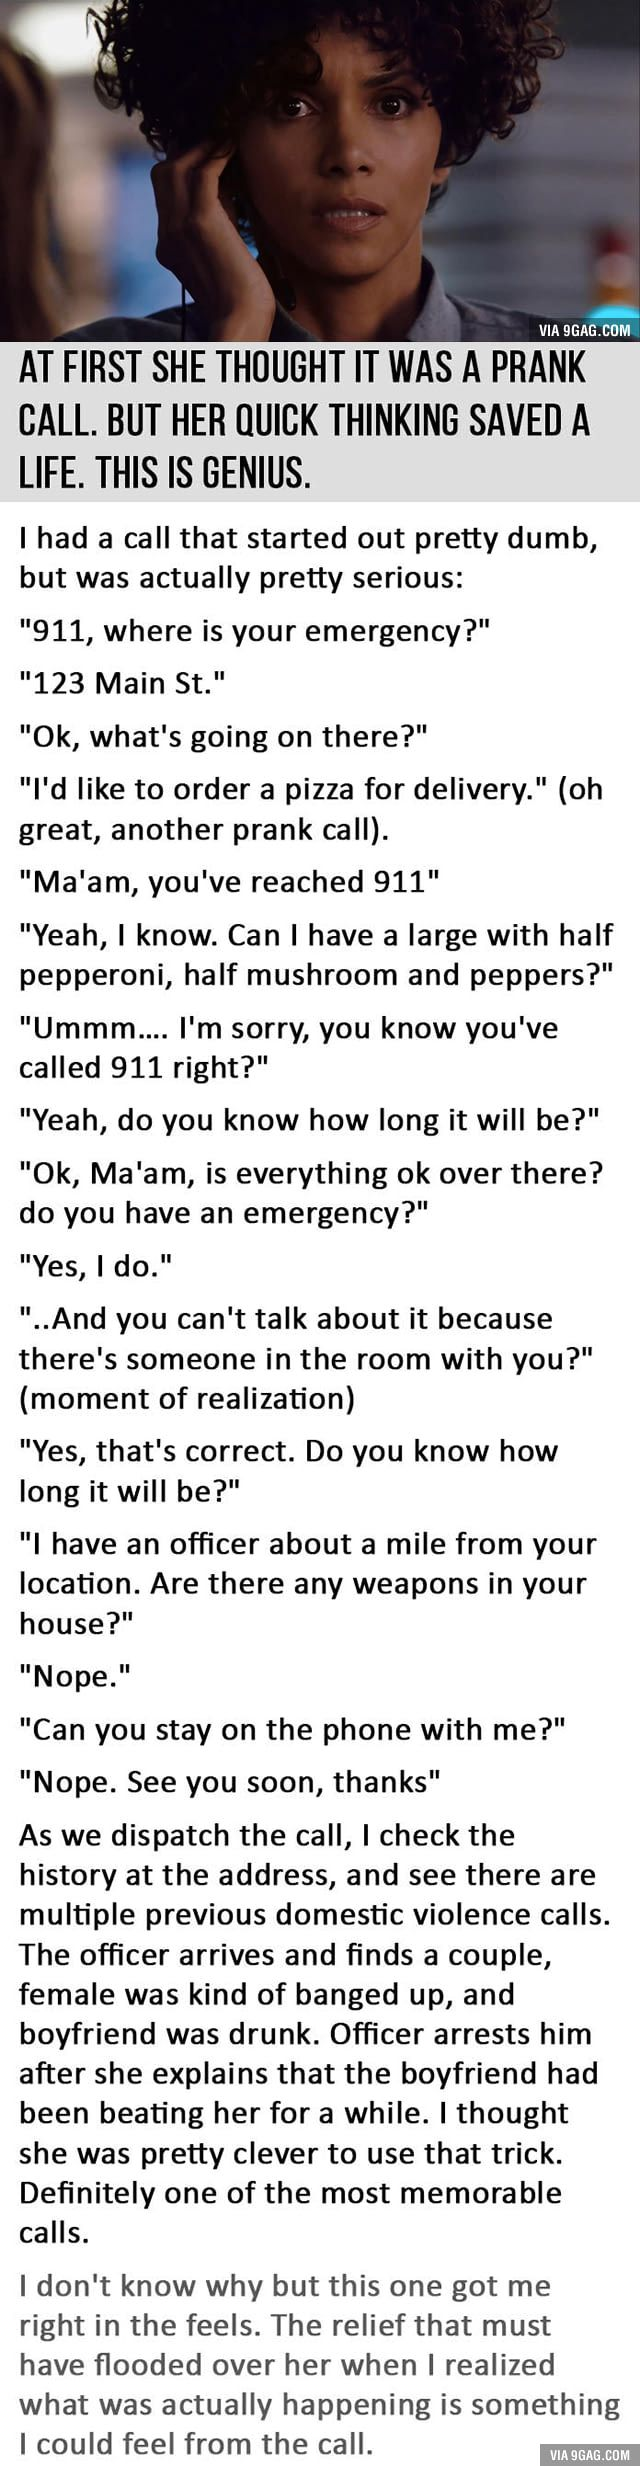 At First She Thought It Was A Prank Call. But Her Quick Thinking Saved A Life. This is Genius.